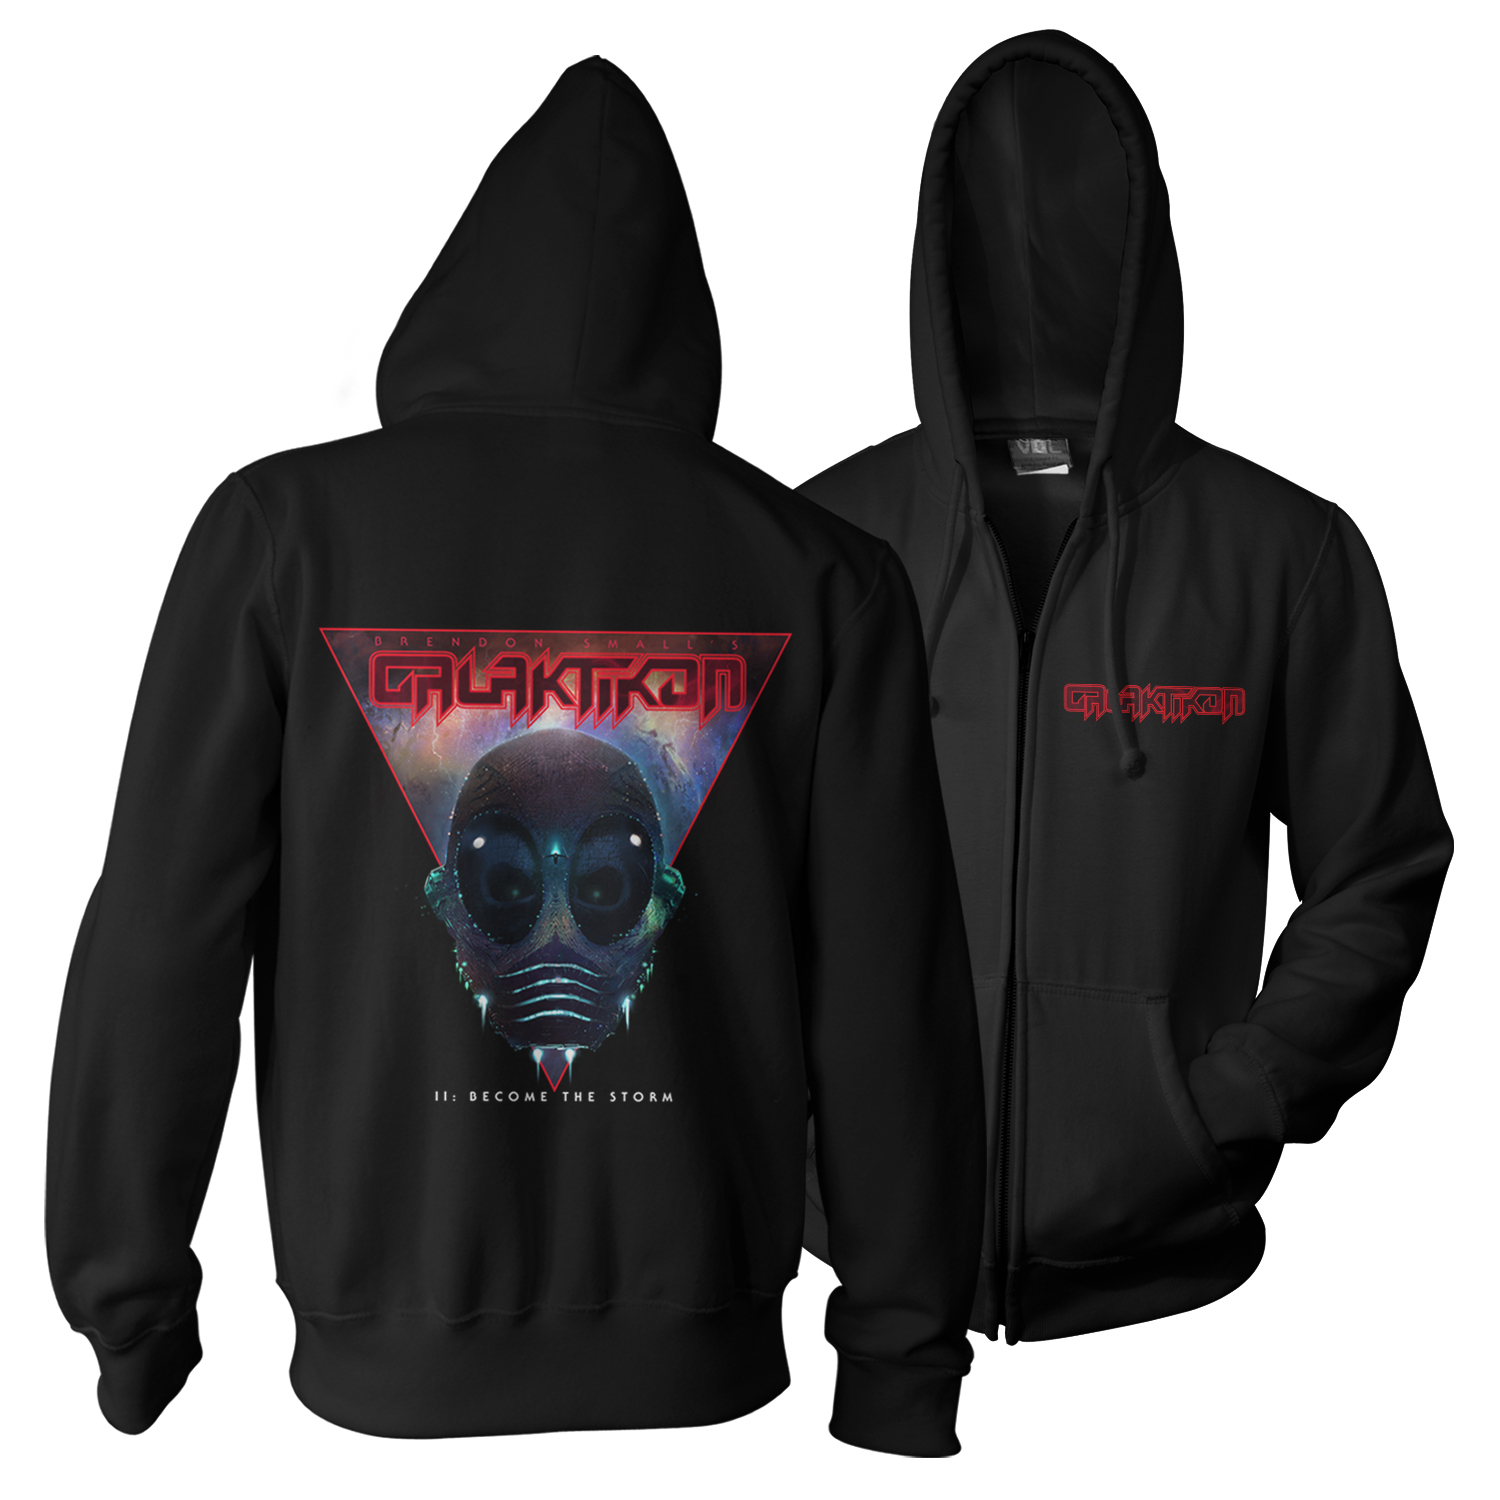 II: Become The Storm 2xLP + Hoodie Bundle